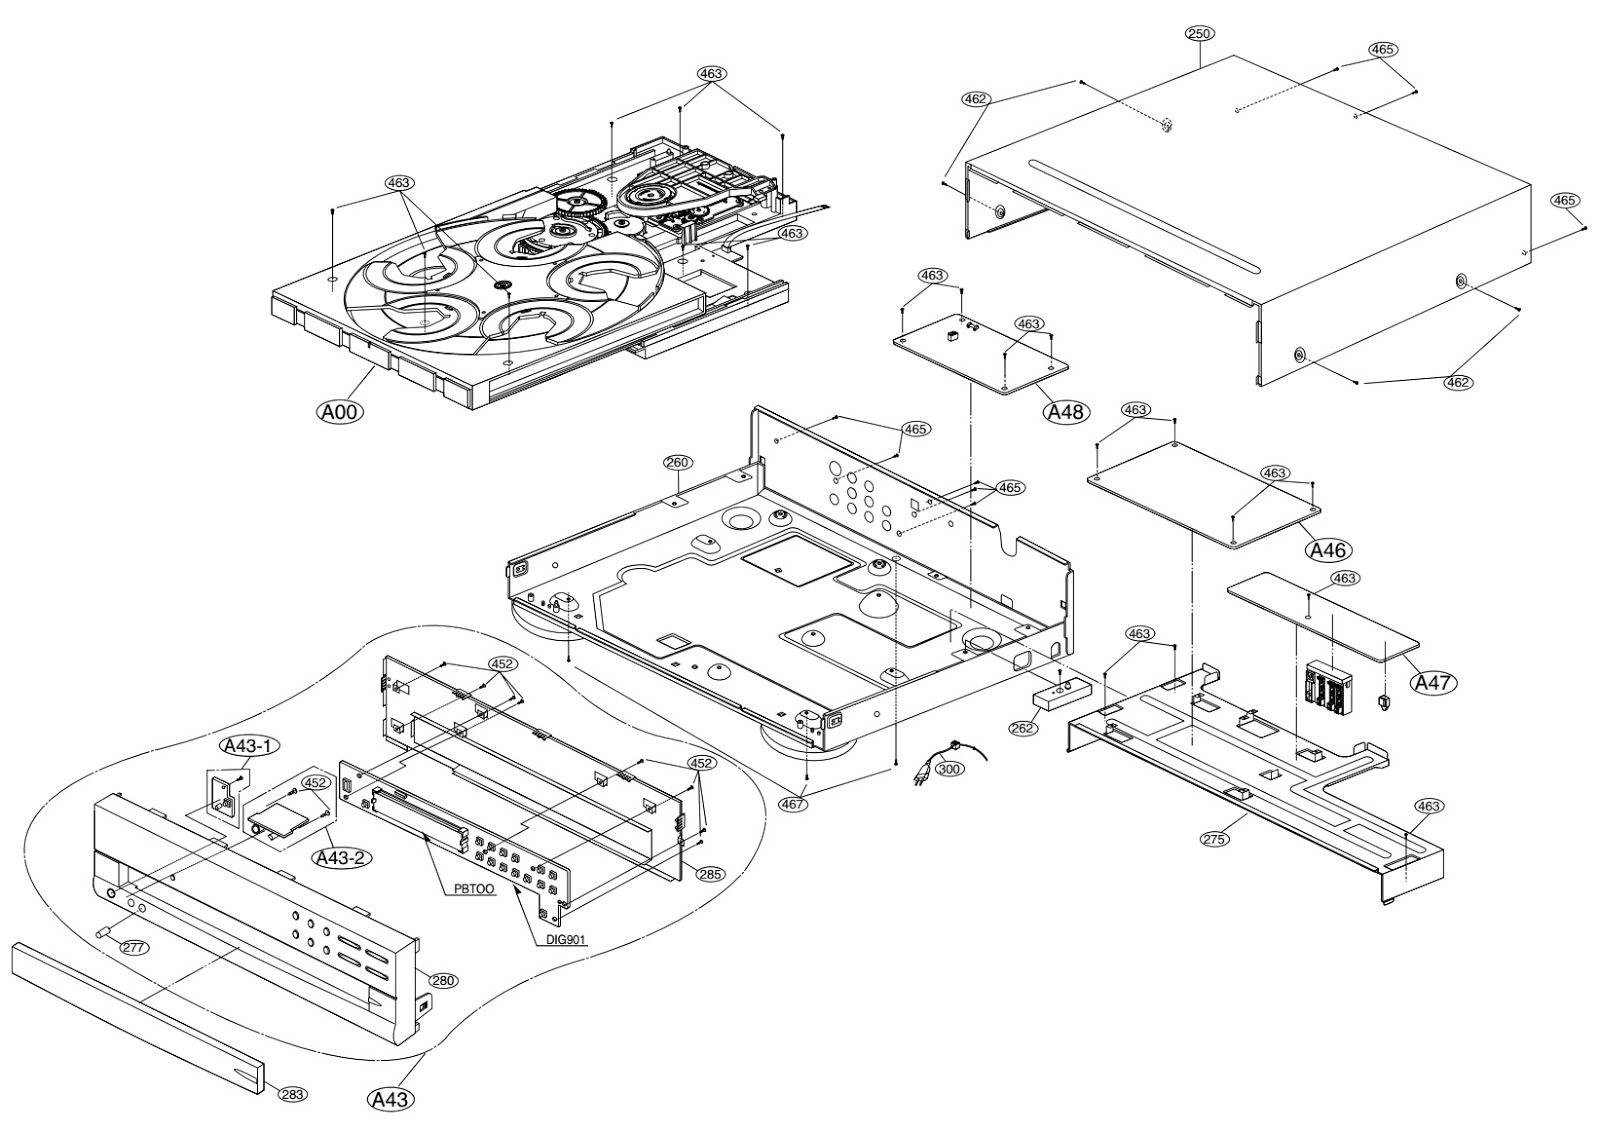 Harman Kardon Dvd 50 Circuit Diagram Disassembly